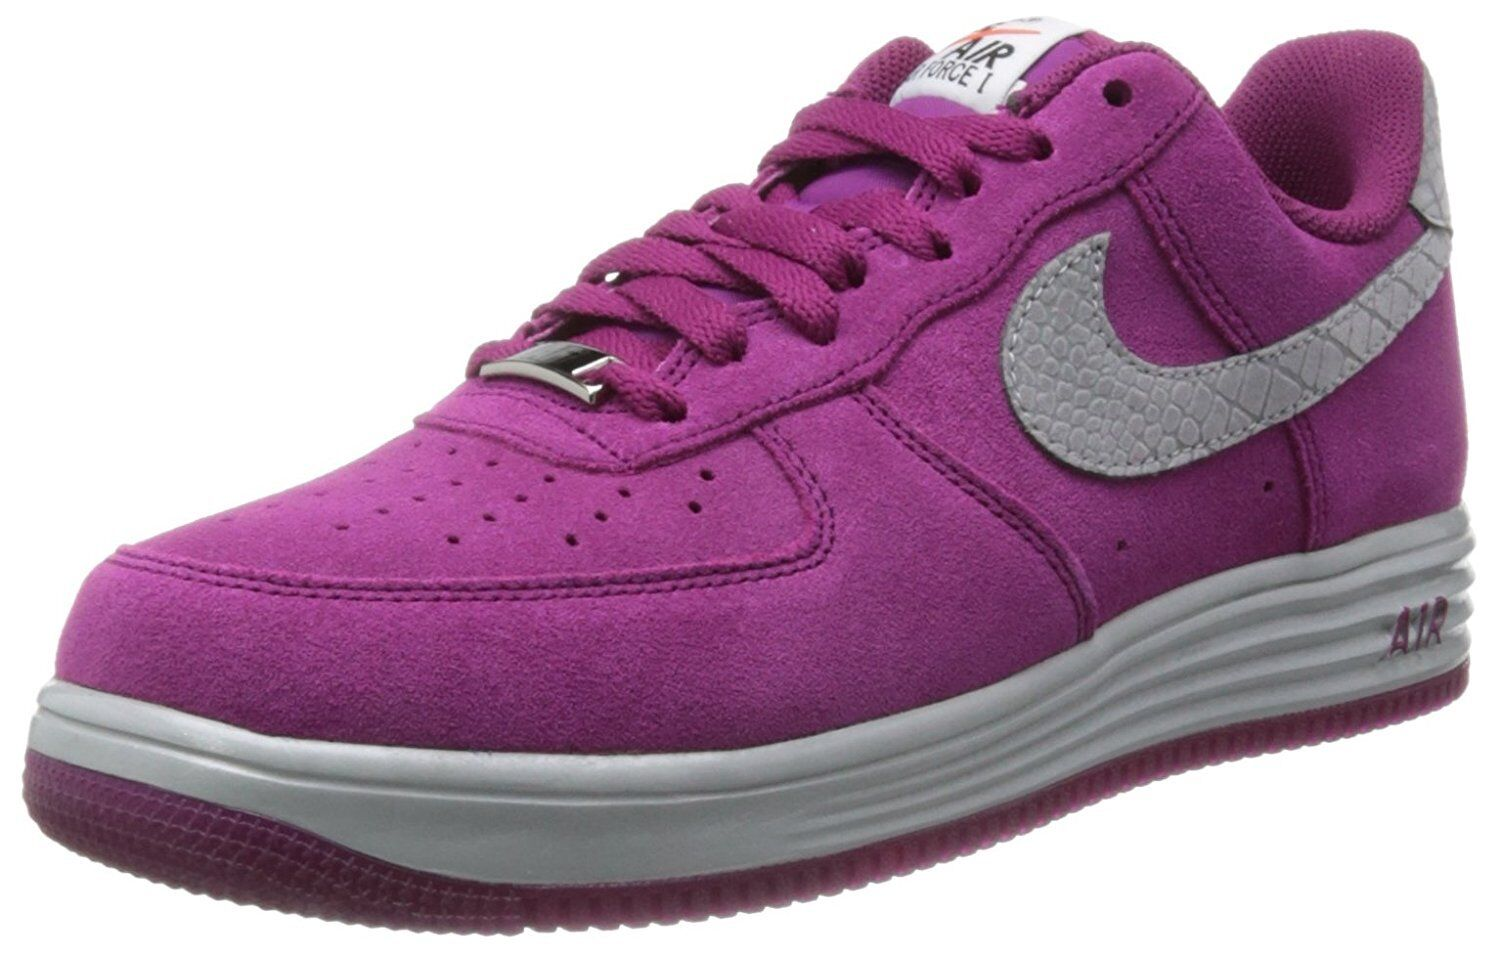 Nike Lunar Force 1 Air Force Men's Size 8.5 8.5 8.5 (616774-600) Raspberry Red/Silver 354826